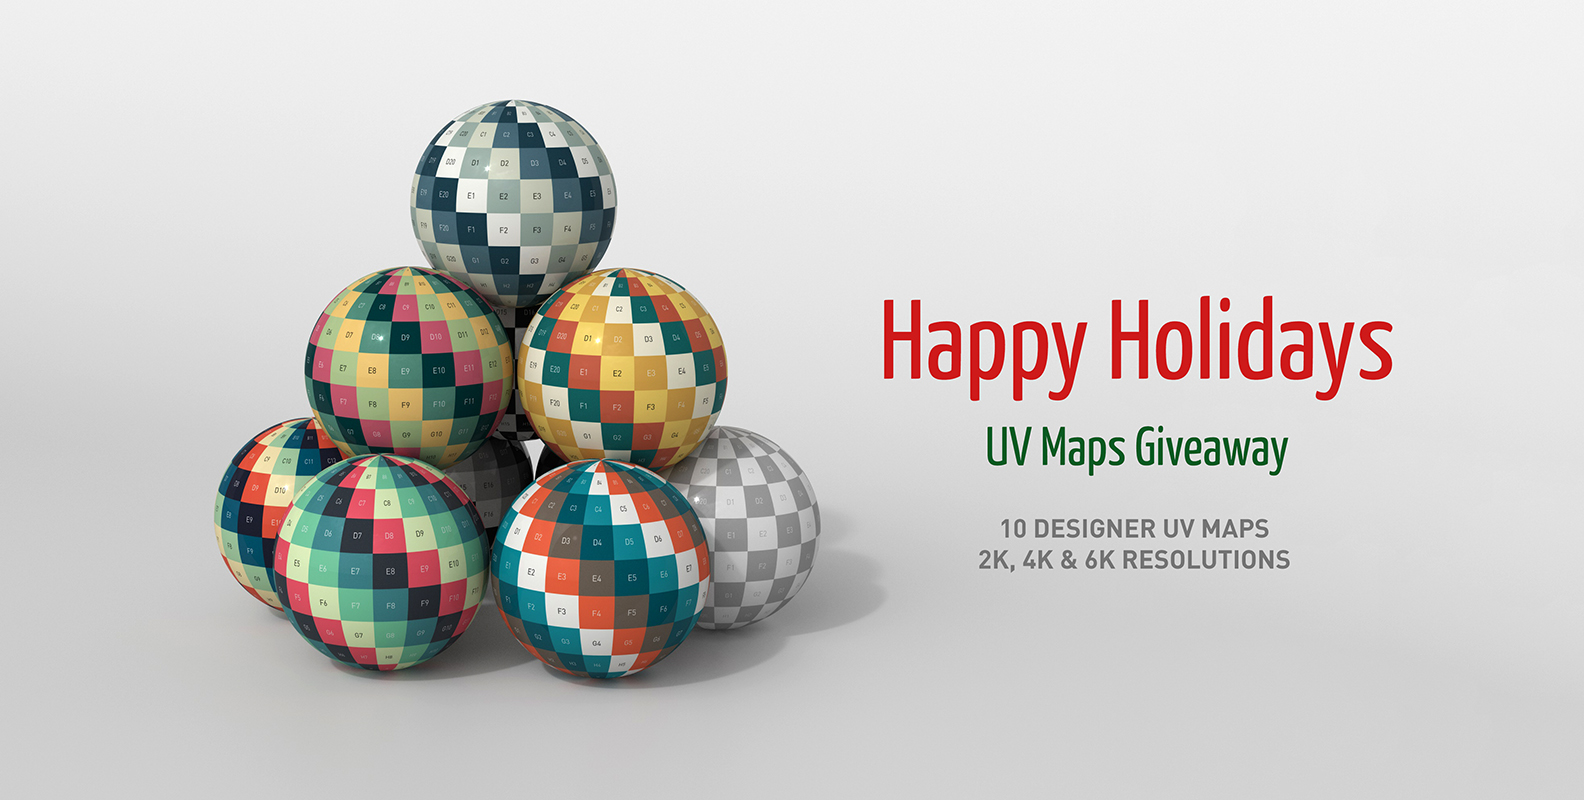 Happy Holidays – UV Maps Giveaway